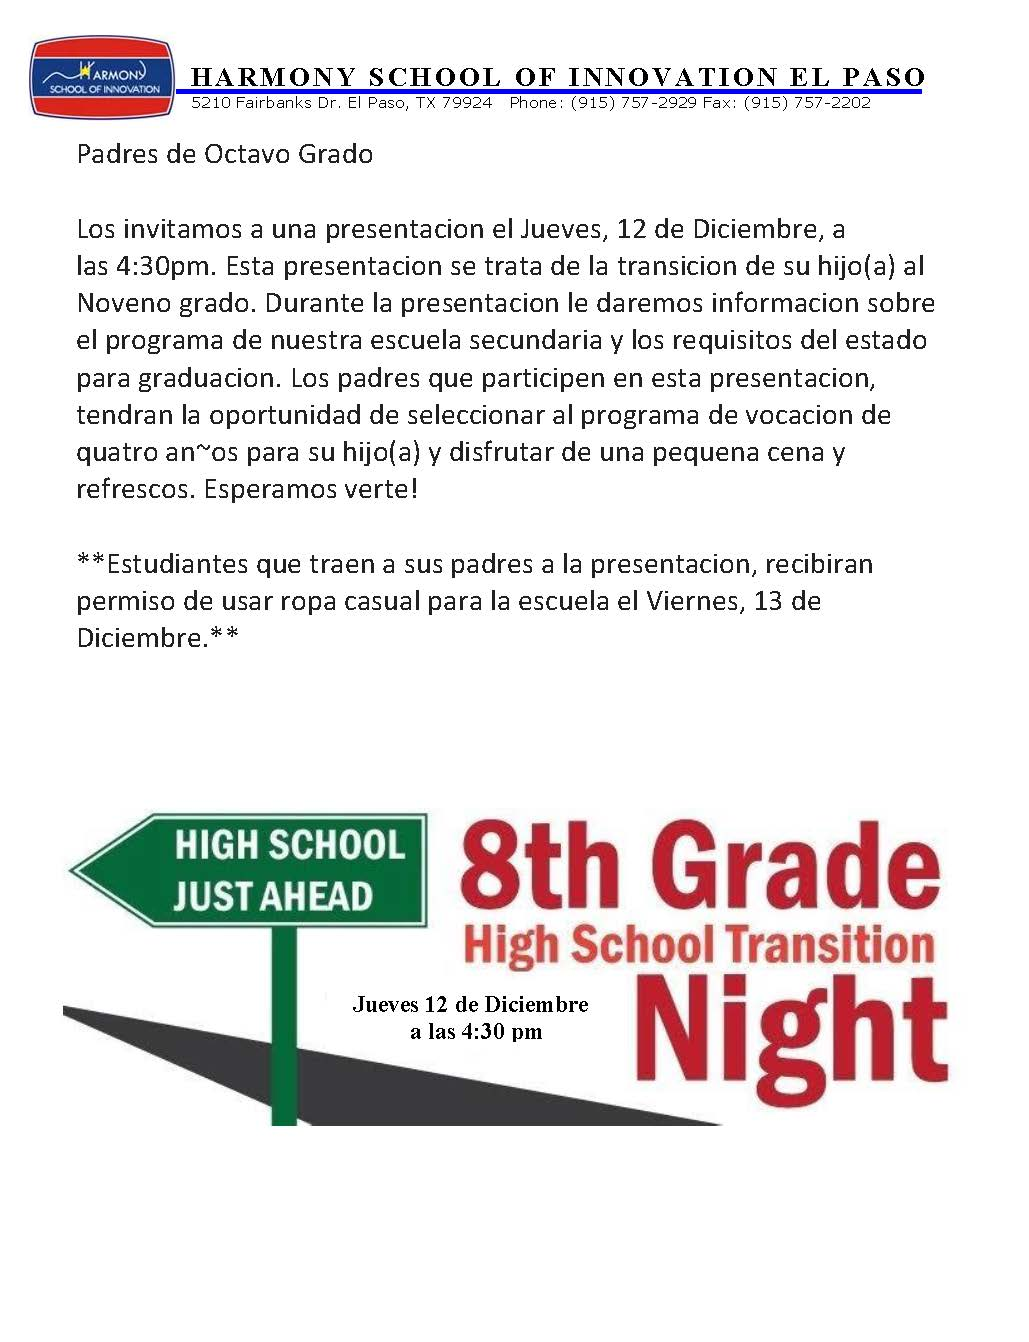 An image of the High School Transition Presentation Flier for Thursday, December 12th, at 4:30pm.